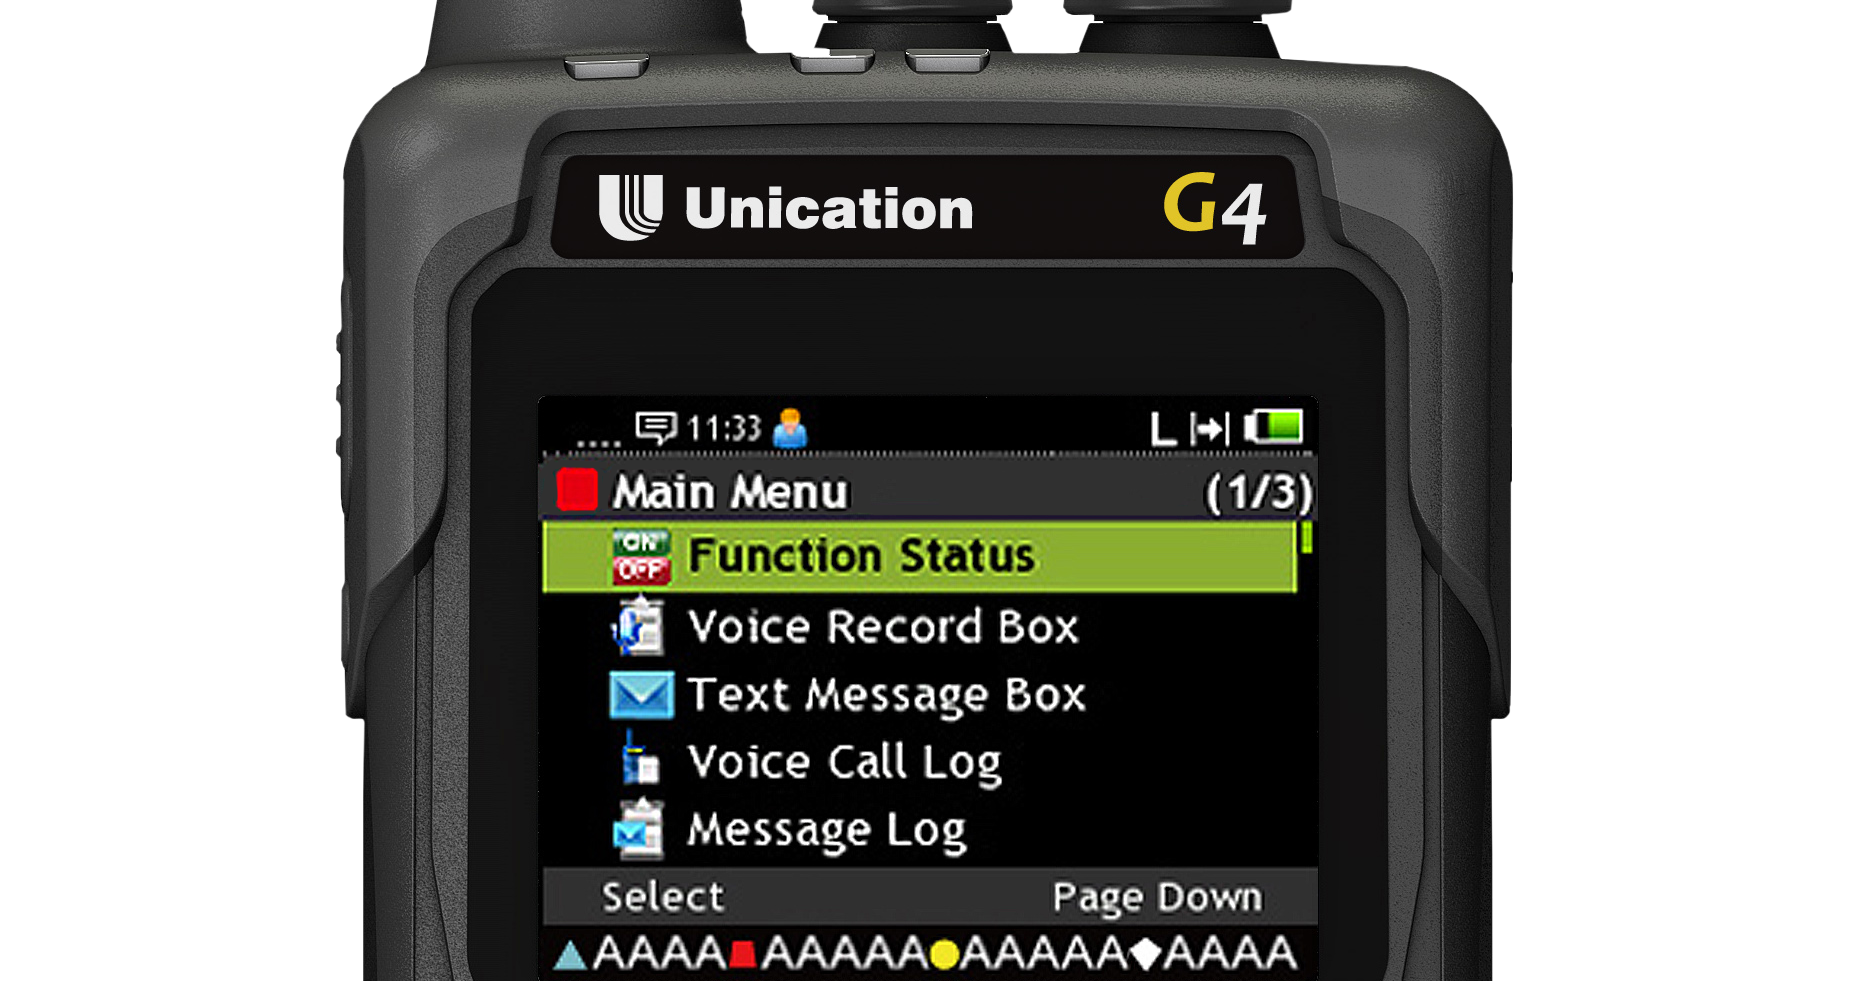 G4 P25 Voice Pager